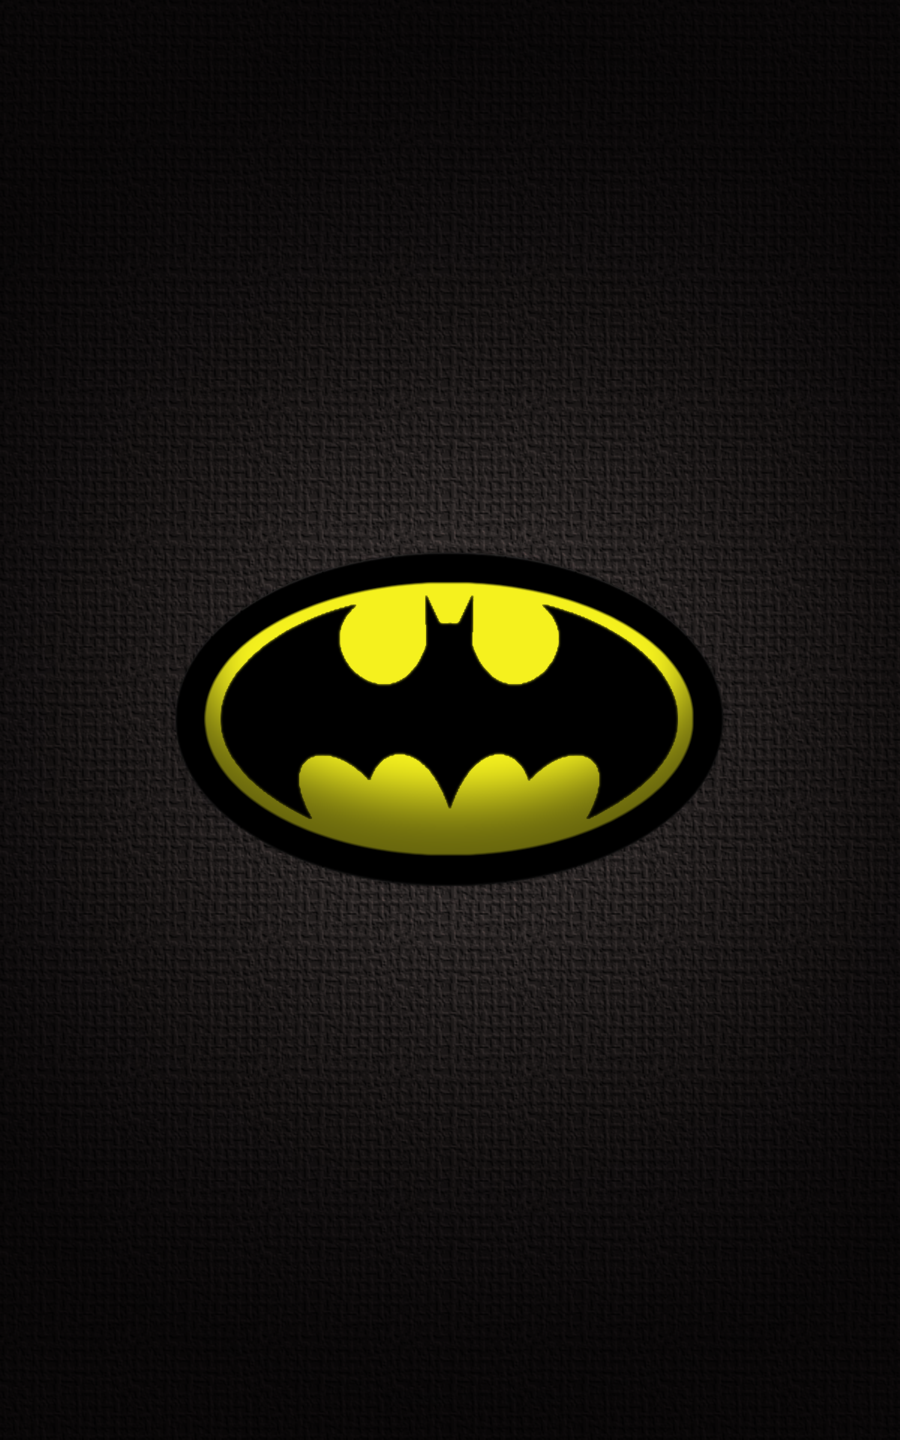 batman phone wallpaper hd - wallpapersafari